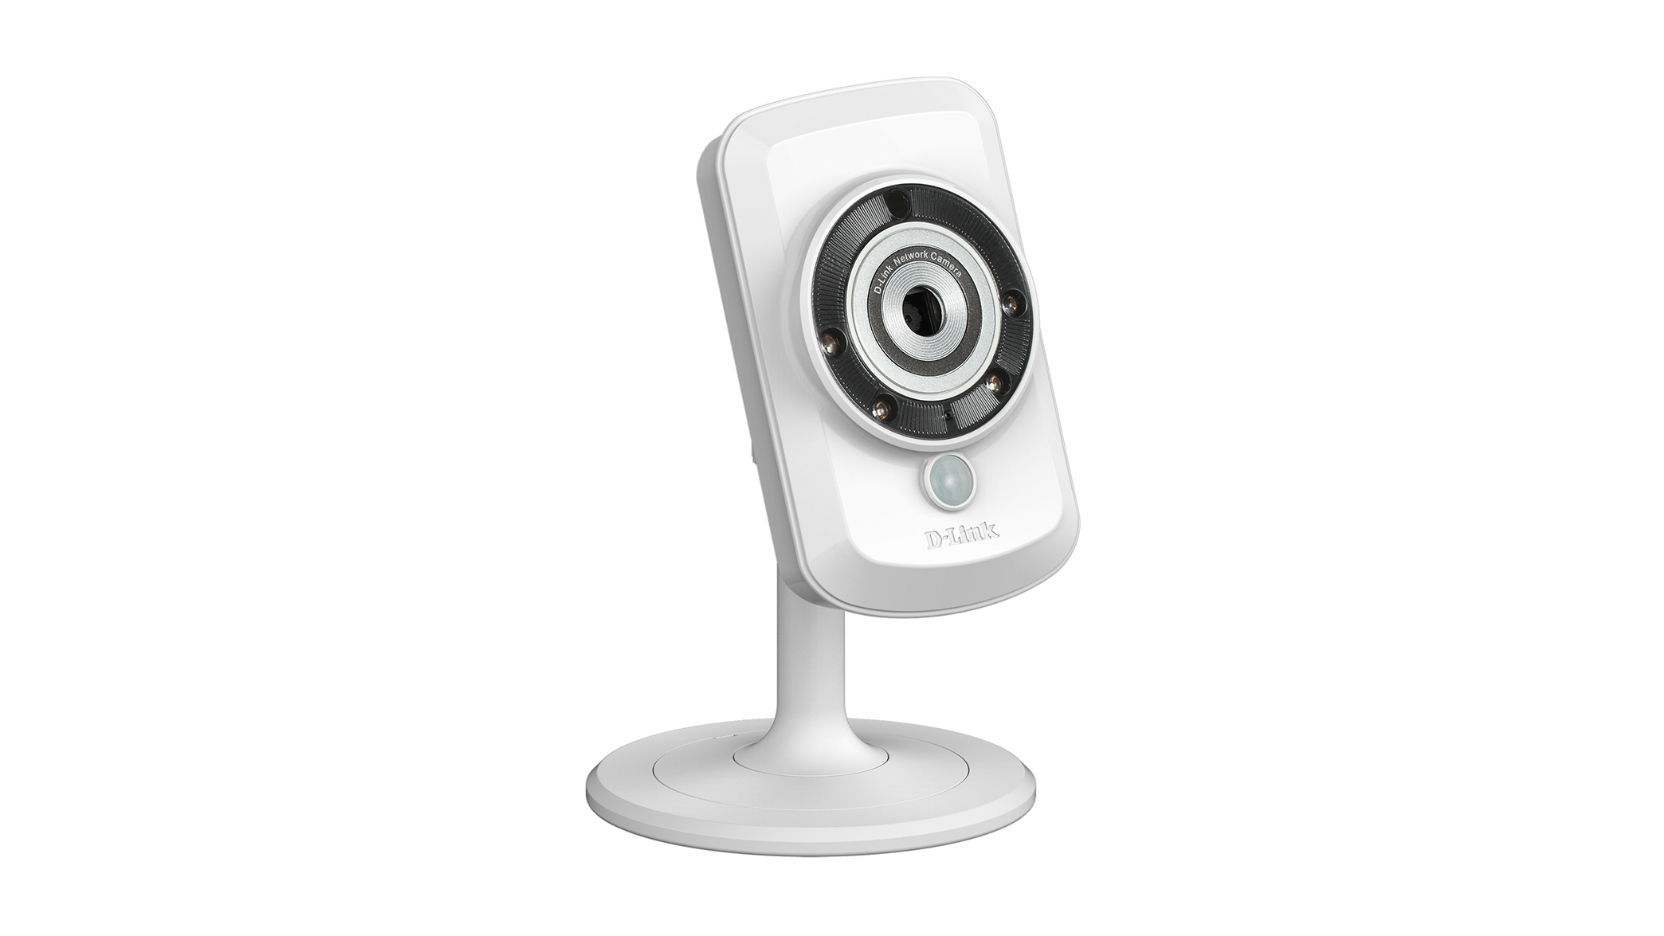 D-LINK DCS-942L IP CAMERA WINDOWS 10 DOWNLOAD DRIVER